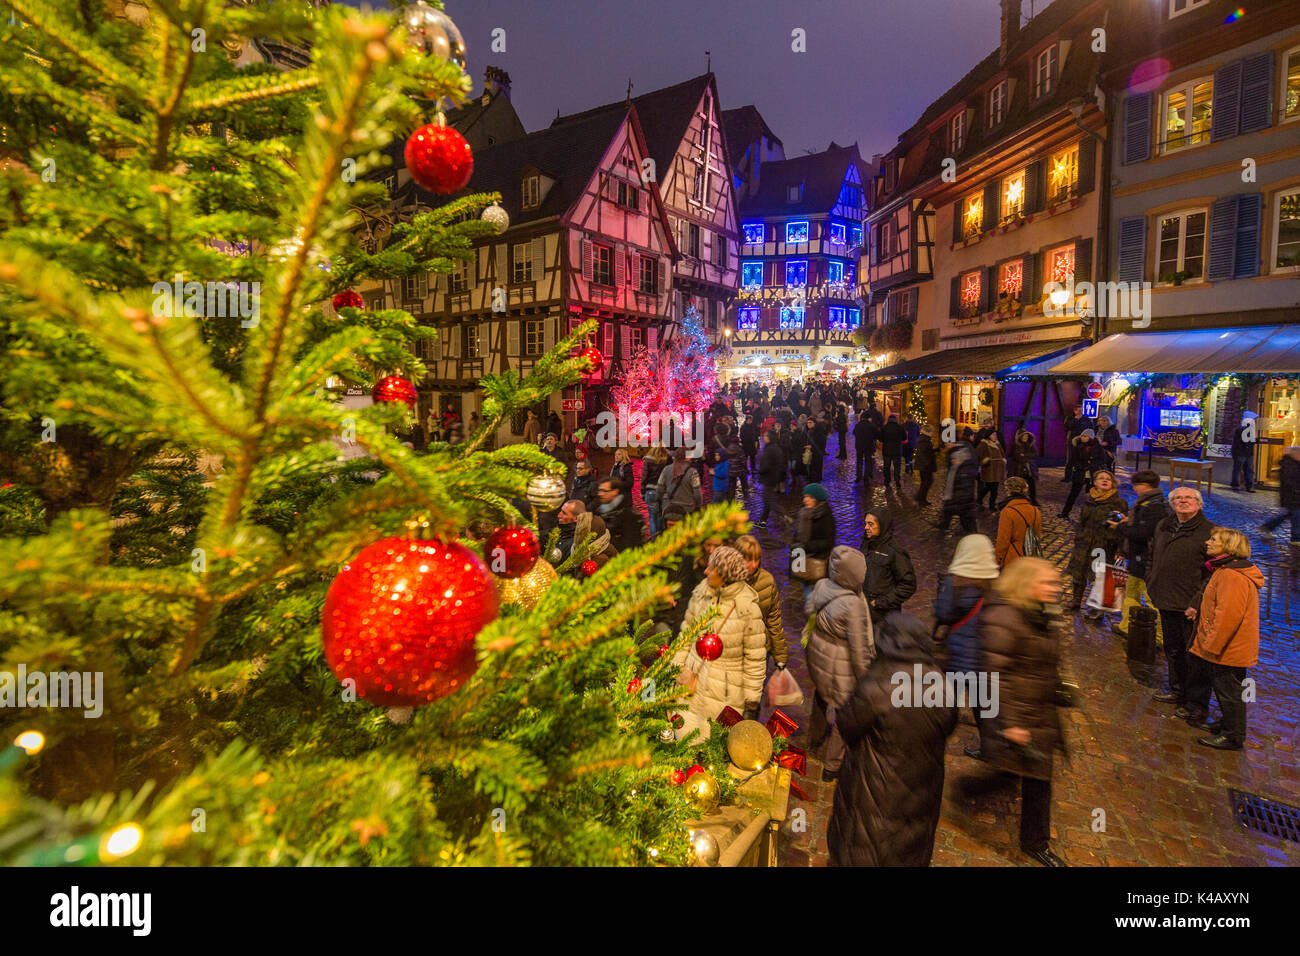 Colorful lights on Christmas trees and ornaments at dusk Colmar Haut-Rhin department Alsace France Europe Stock Photo